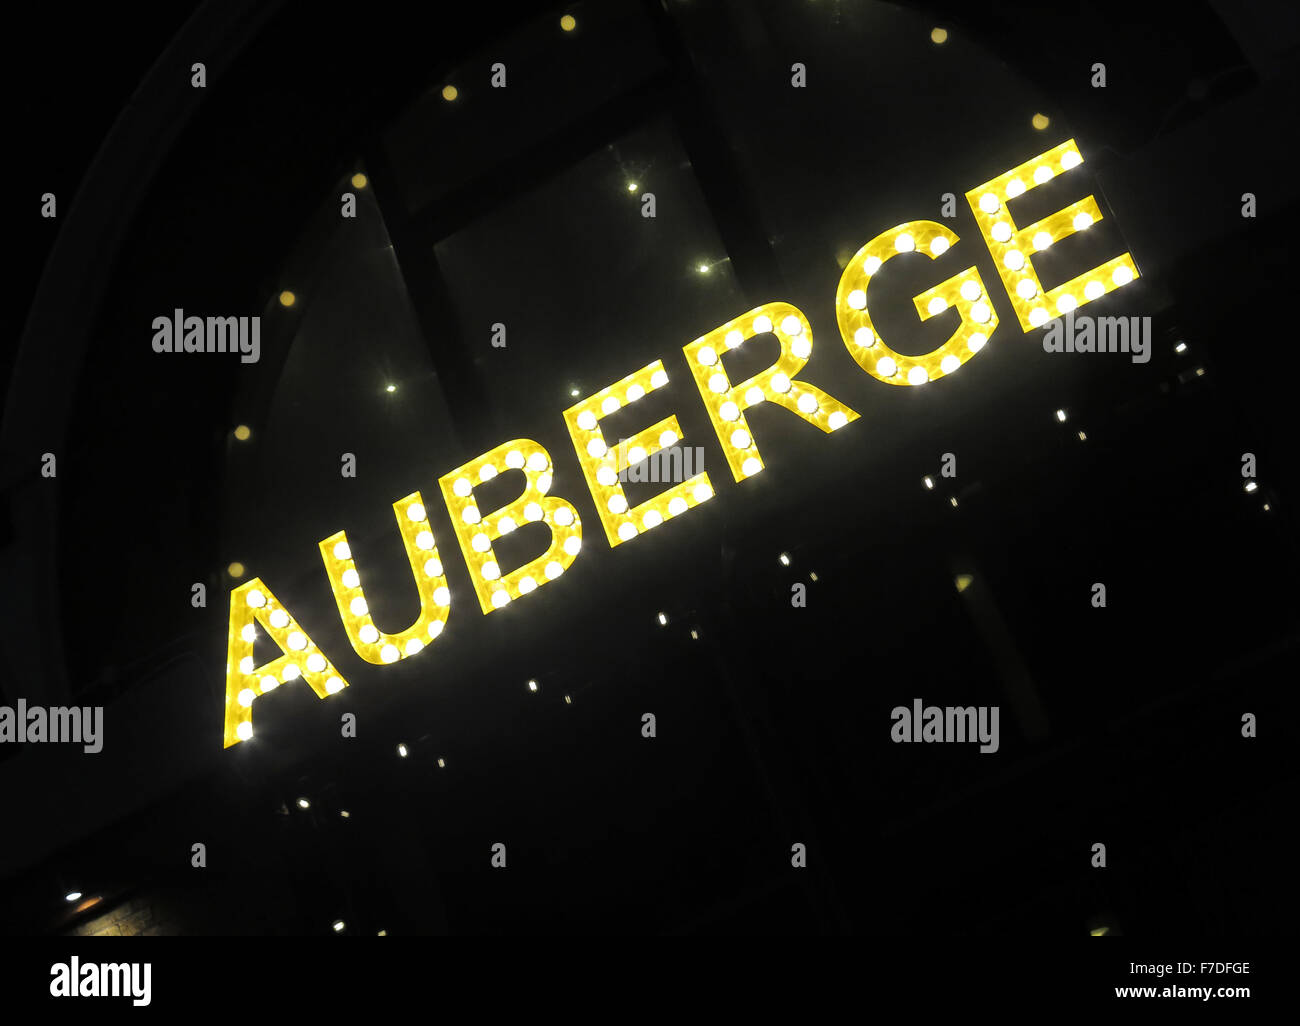 France,French,food,sign,night,dusk,at,auberge,auberge,pub,restaurant,waterloo,london,restaurant,sandell,st,street,waterloo,yellow,star,stars,food,at night,GoTonySmith,Buy Pictures of,Buy Images Of